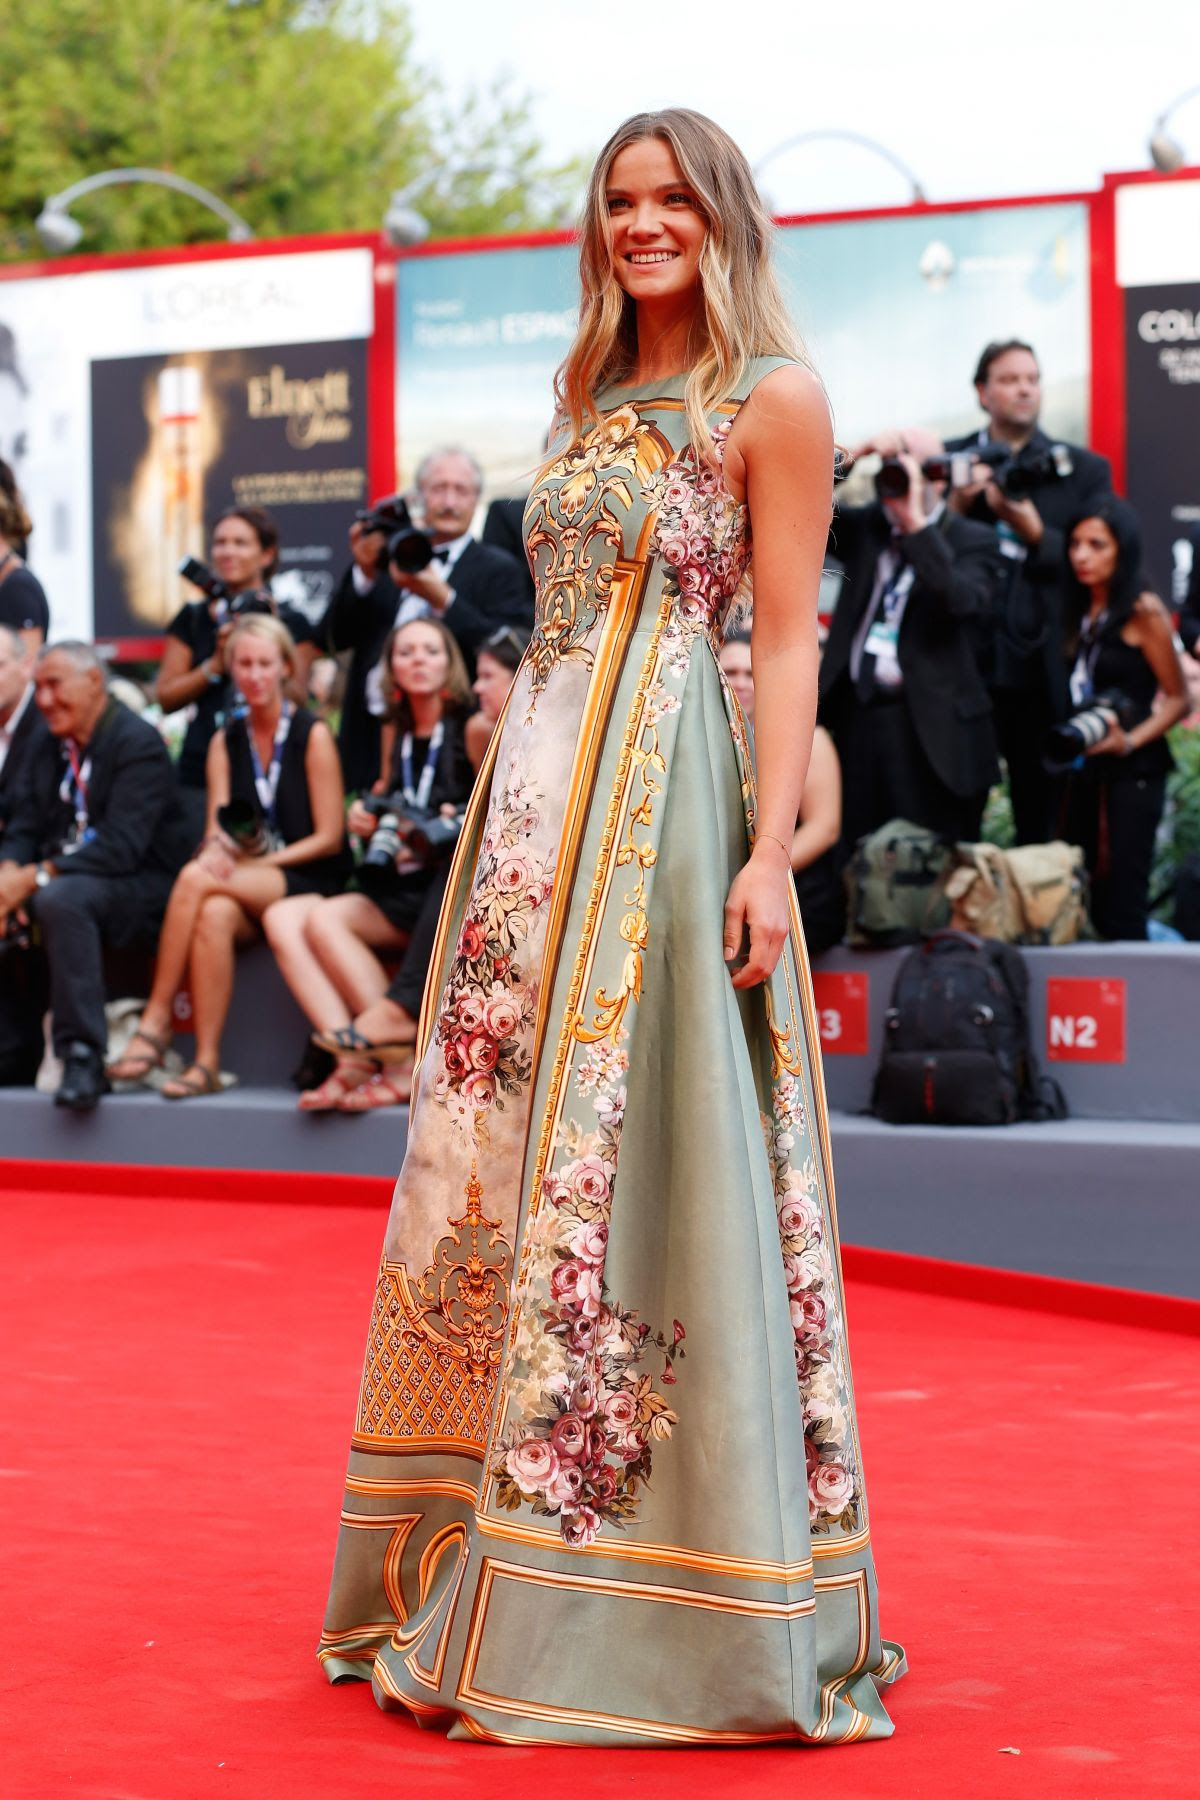 http://www.hawtcelebs.com/wp-content/uploads/2015/09/fiammetta-cicogna-at-everest-premiere-and-72nd-venice-film-festival-opening-ceremony_12.jpg